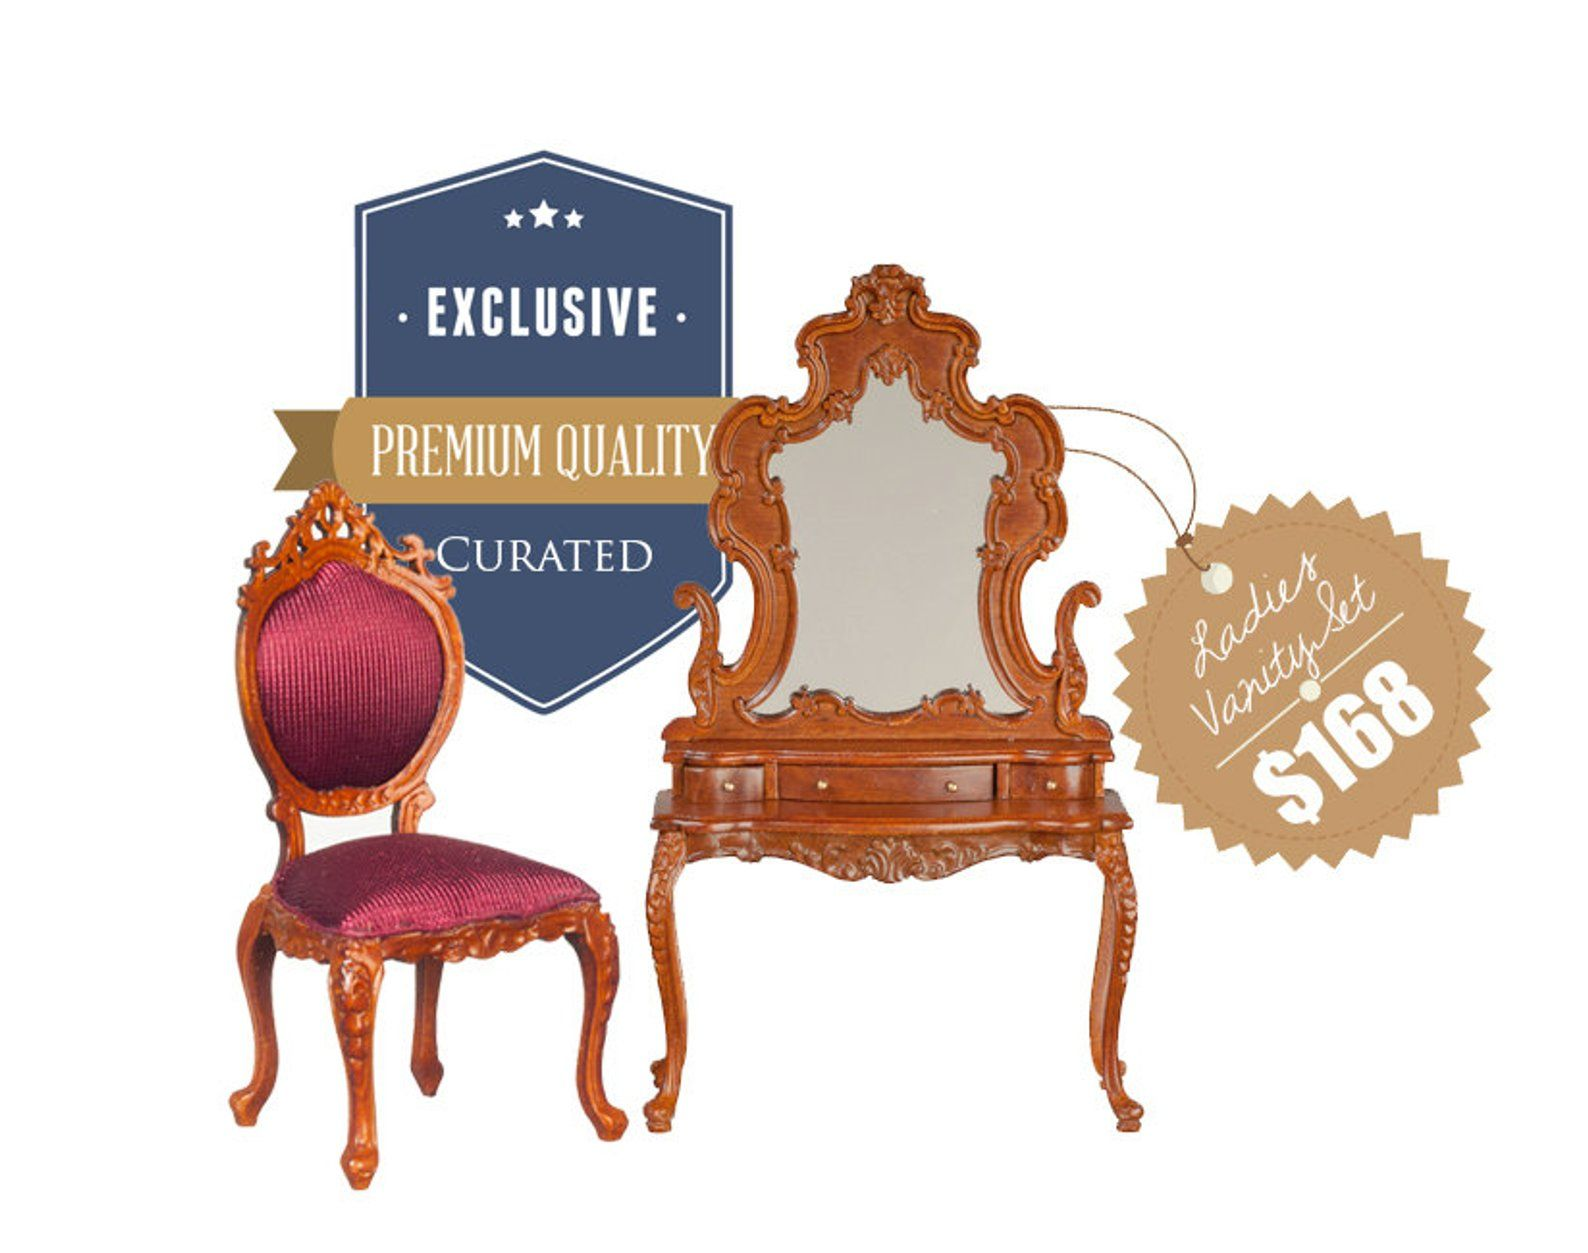 Finished In Walnut Miniature 1:12 Scale Wooden Scallop Chair For Doll House